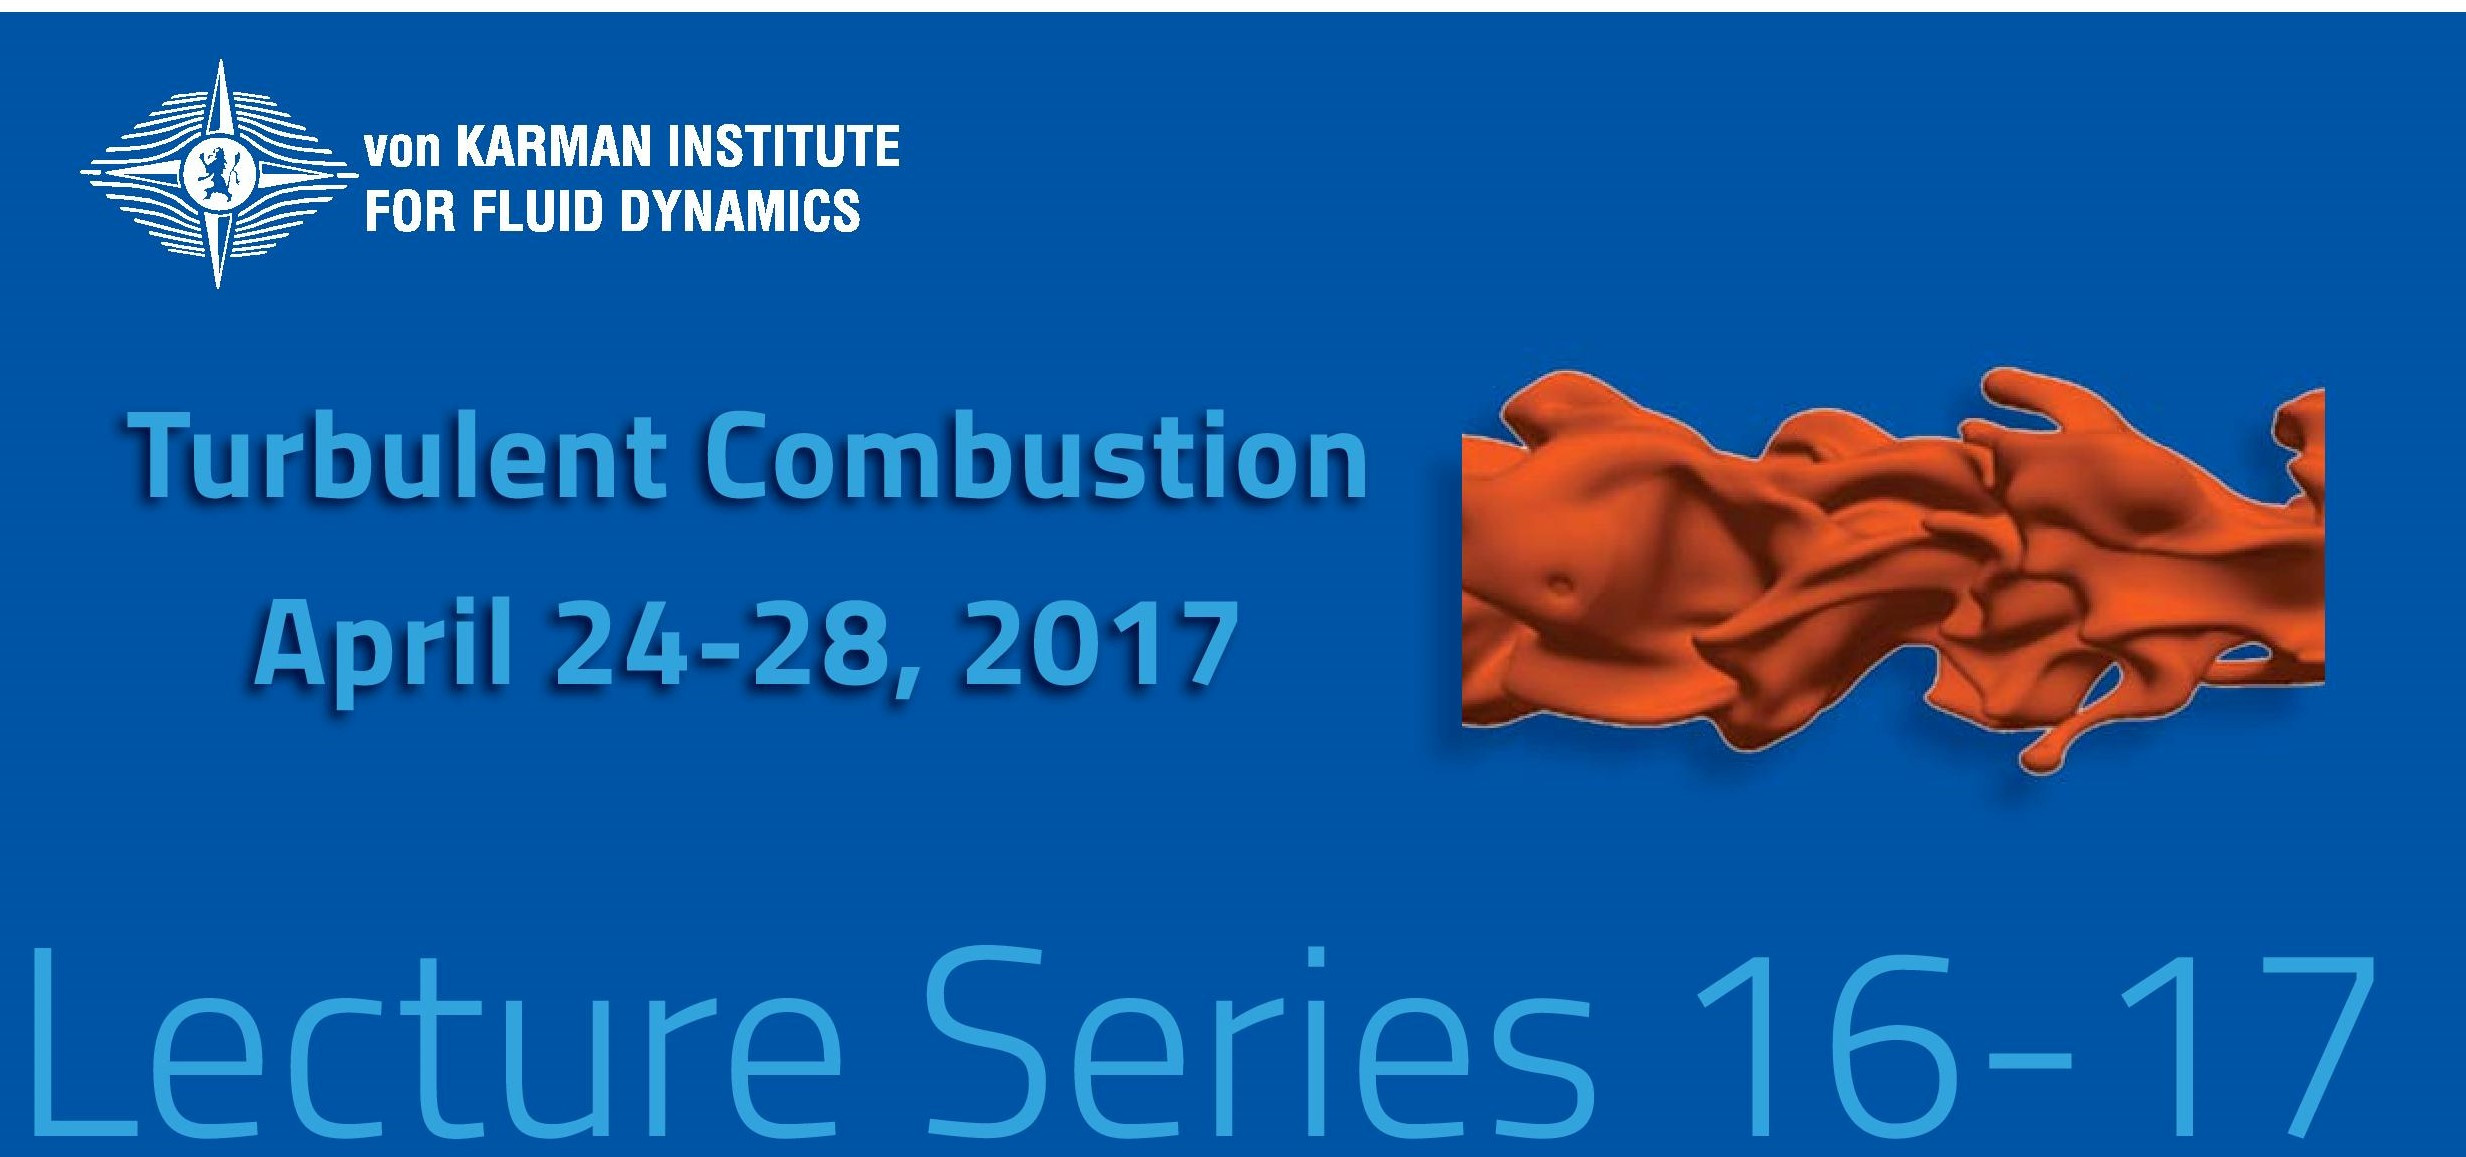 Applications of turbulent combustion modeling - HAWORTH, D.C.